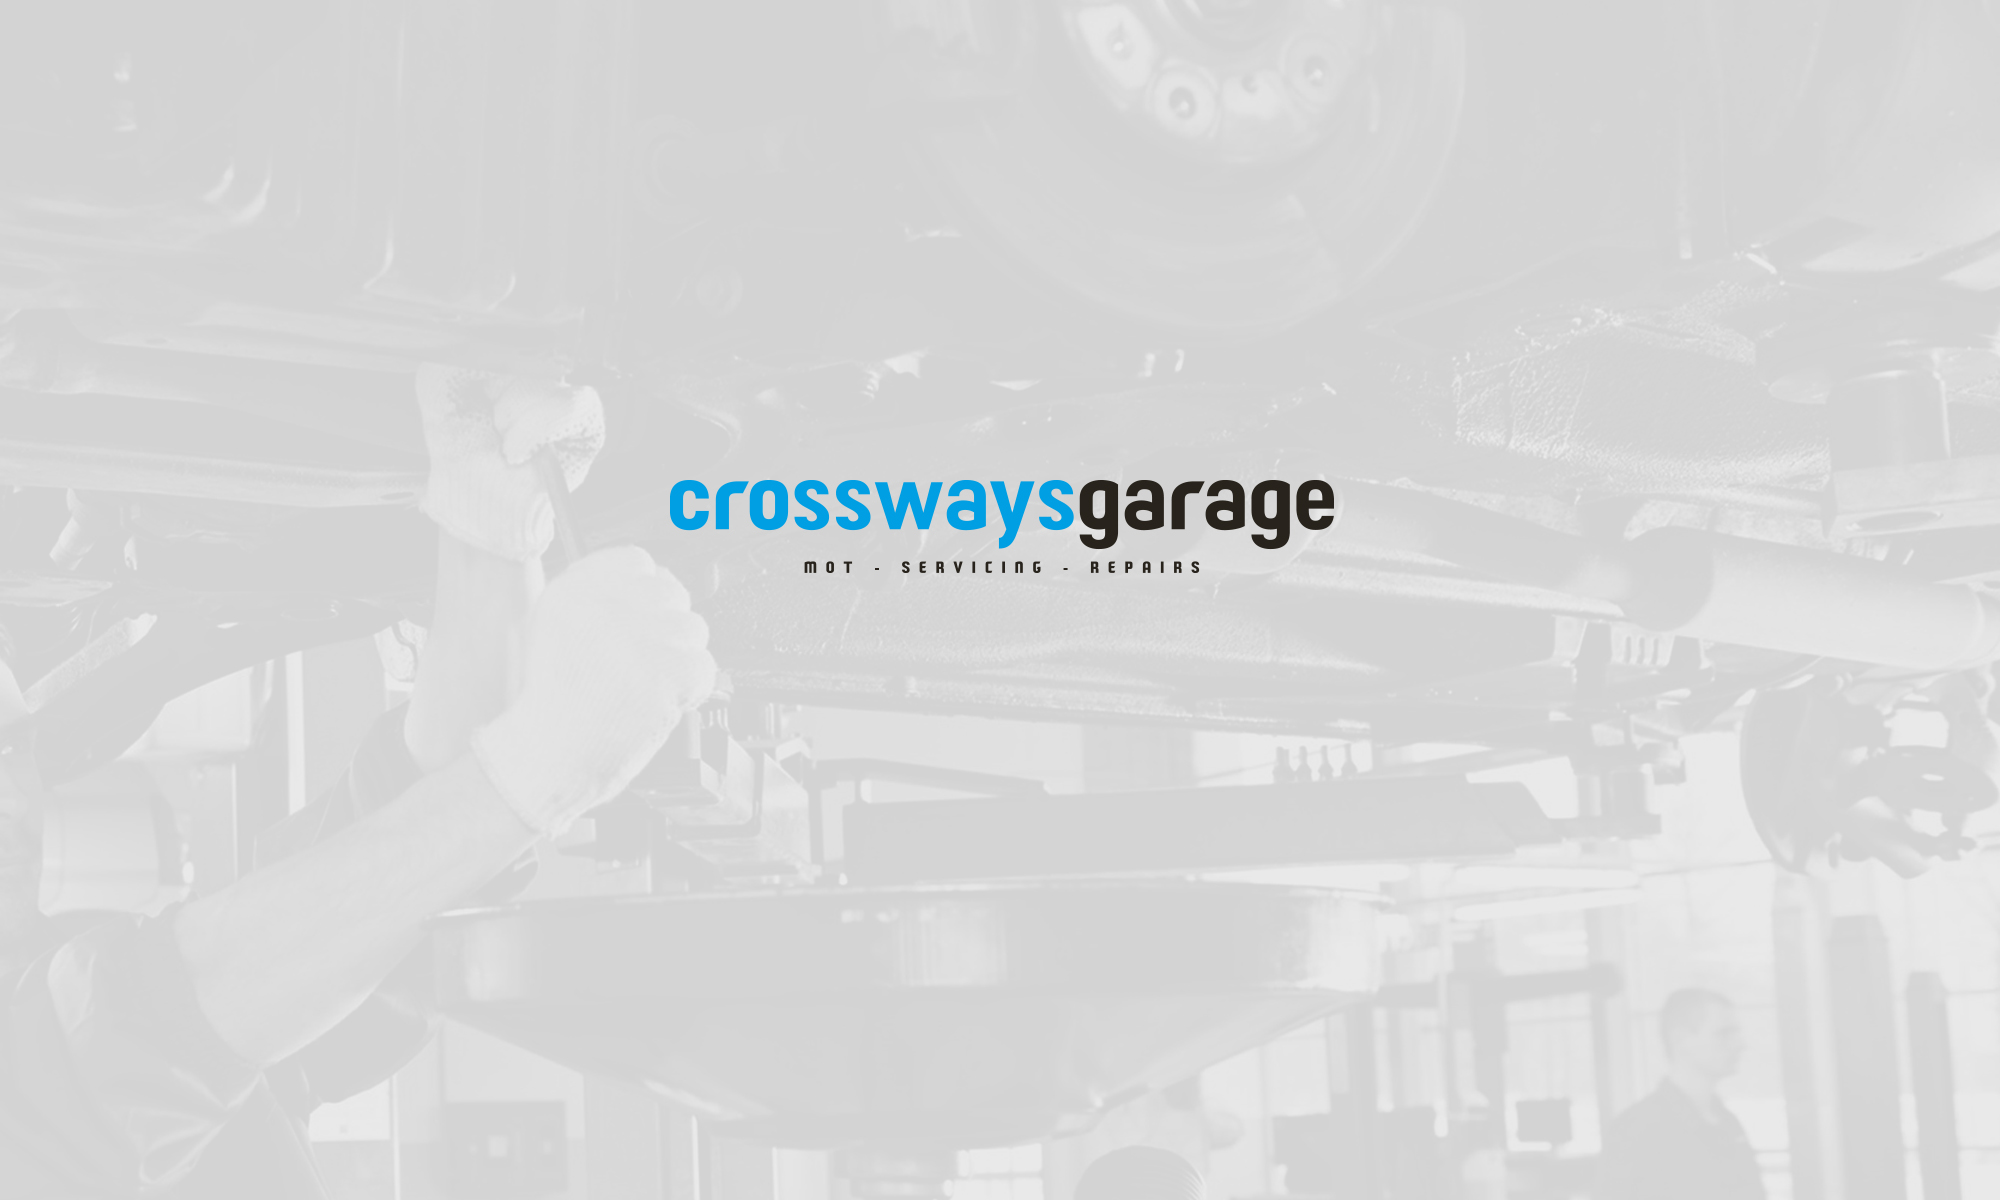 Crossways Garage